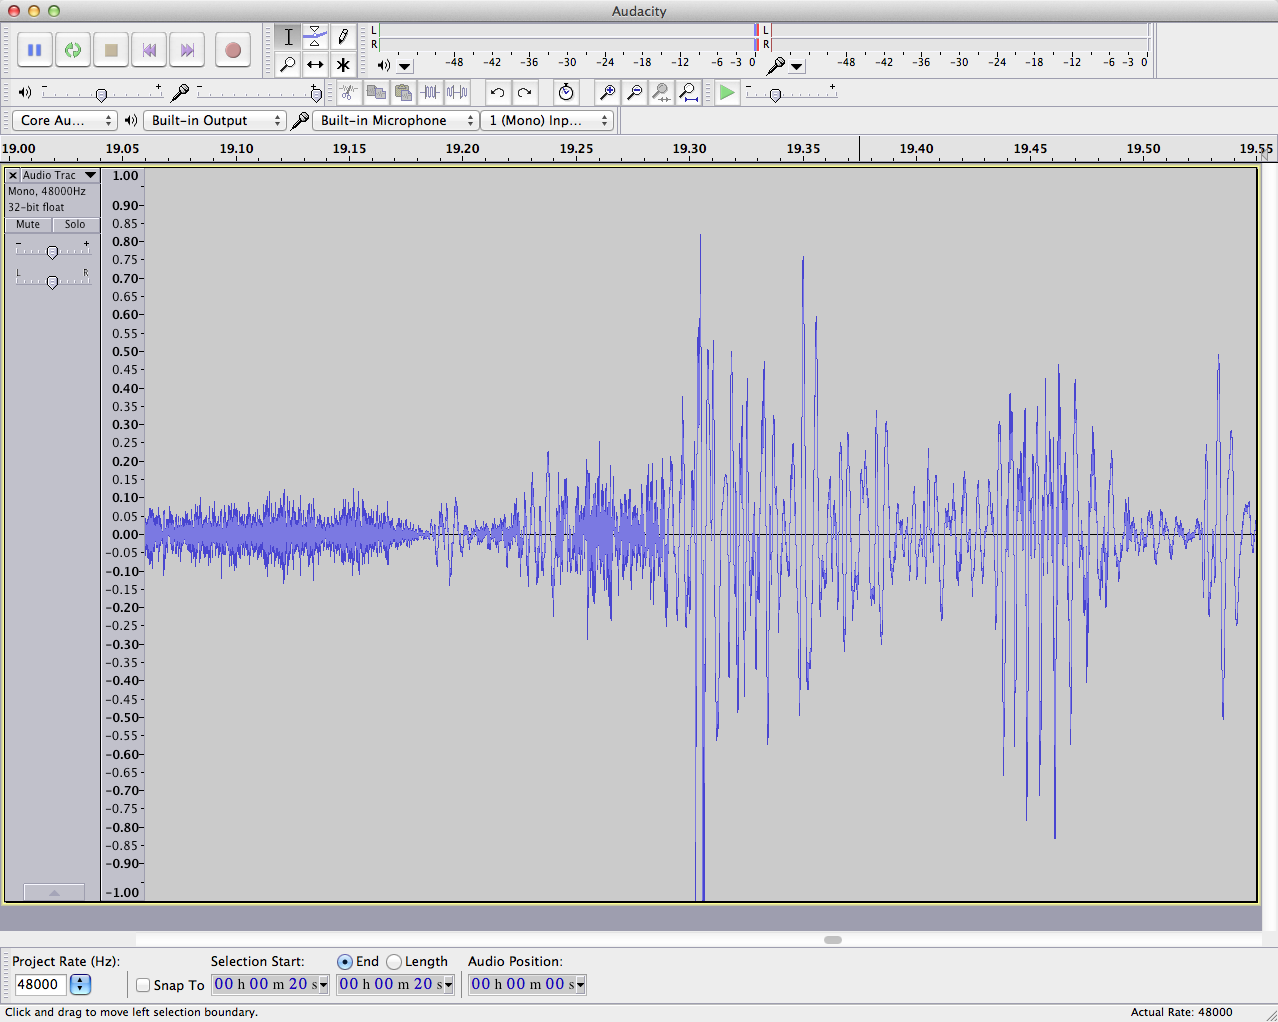 audacity waveform-zoomed in